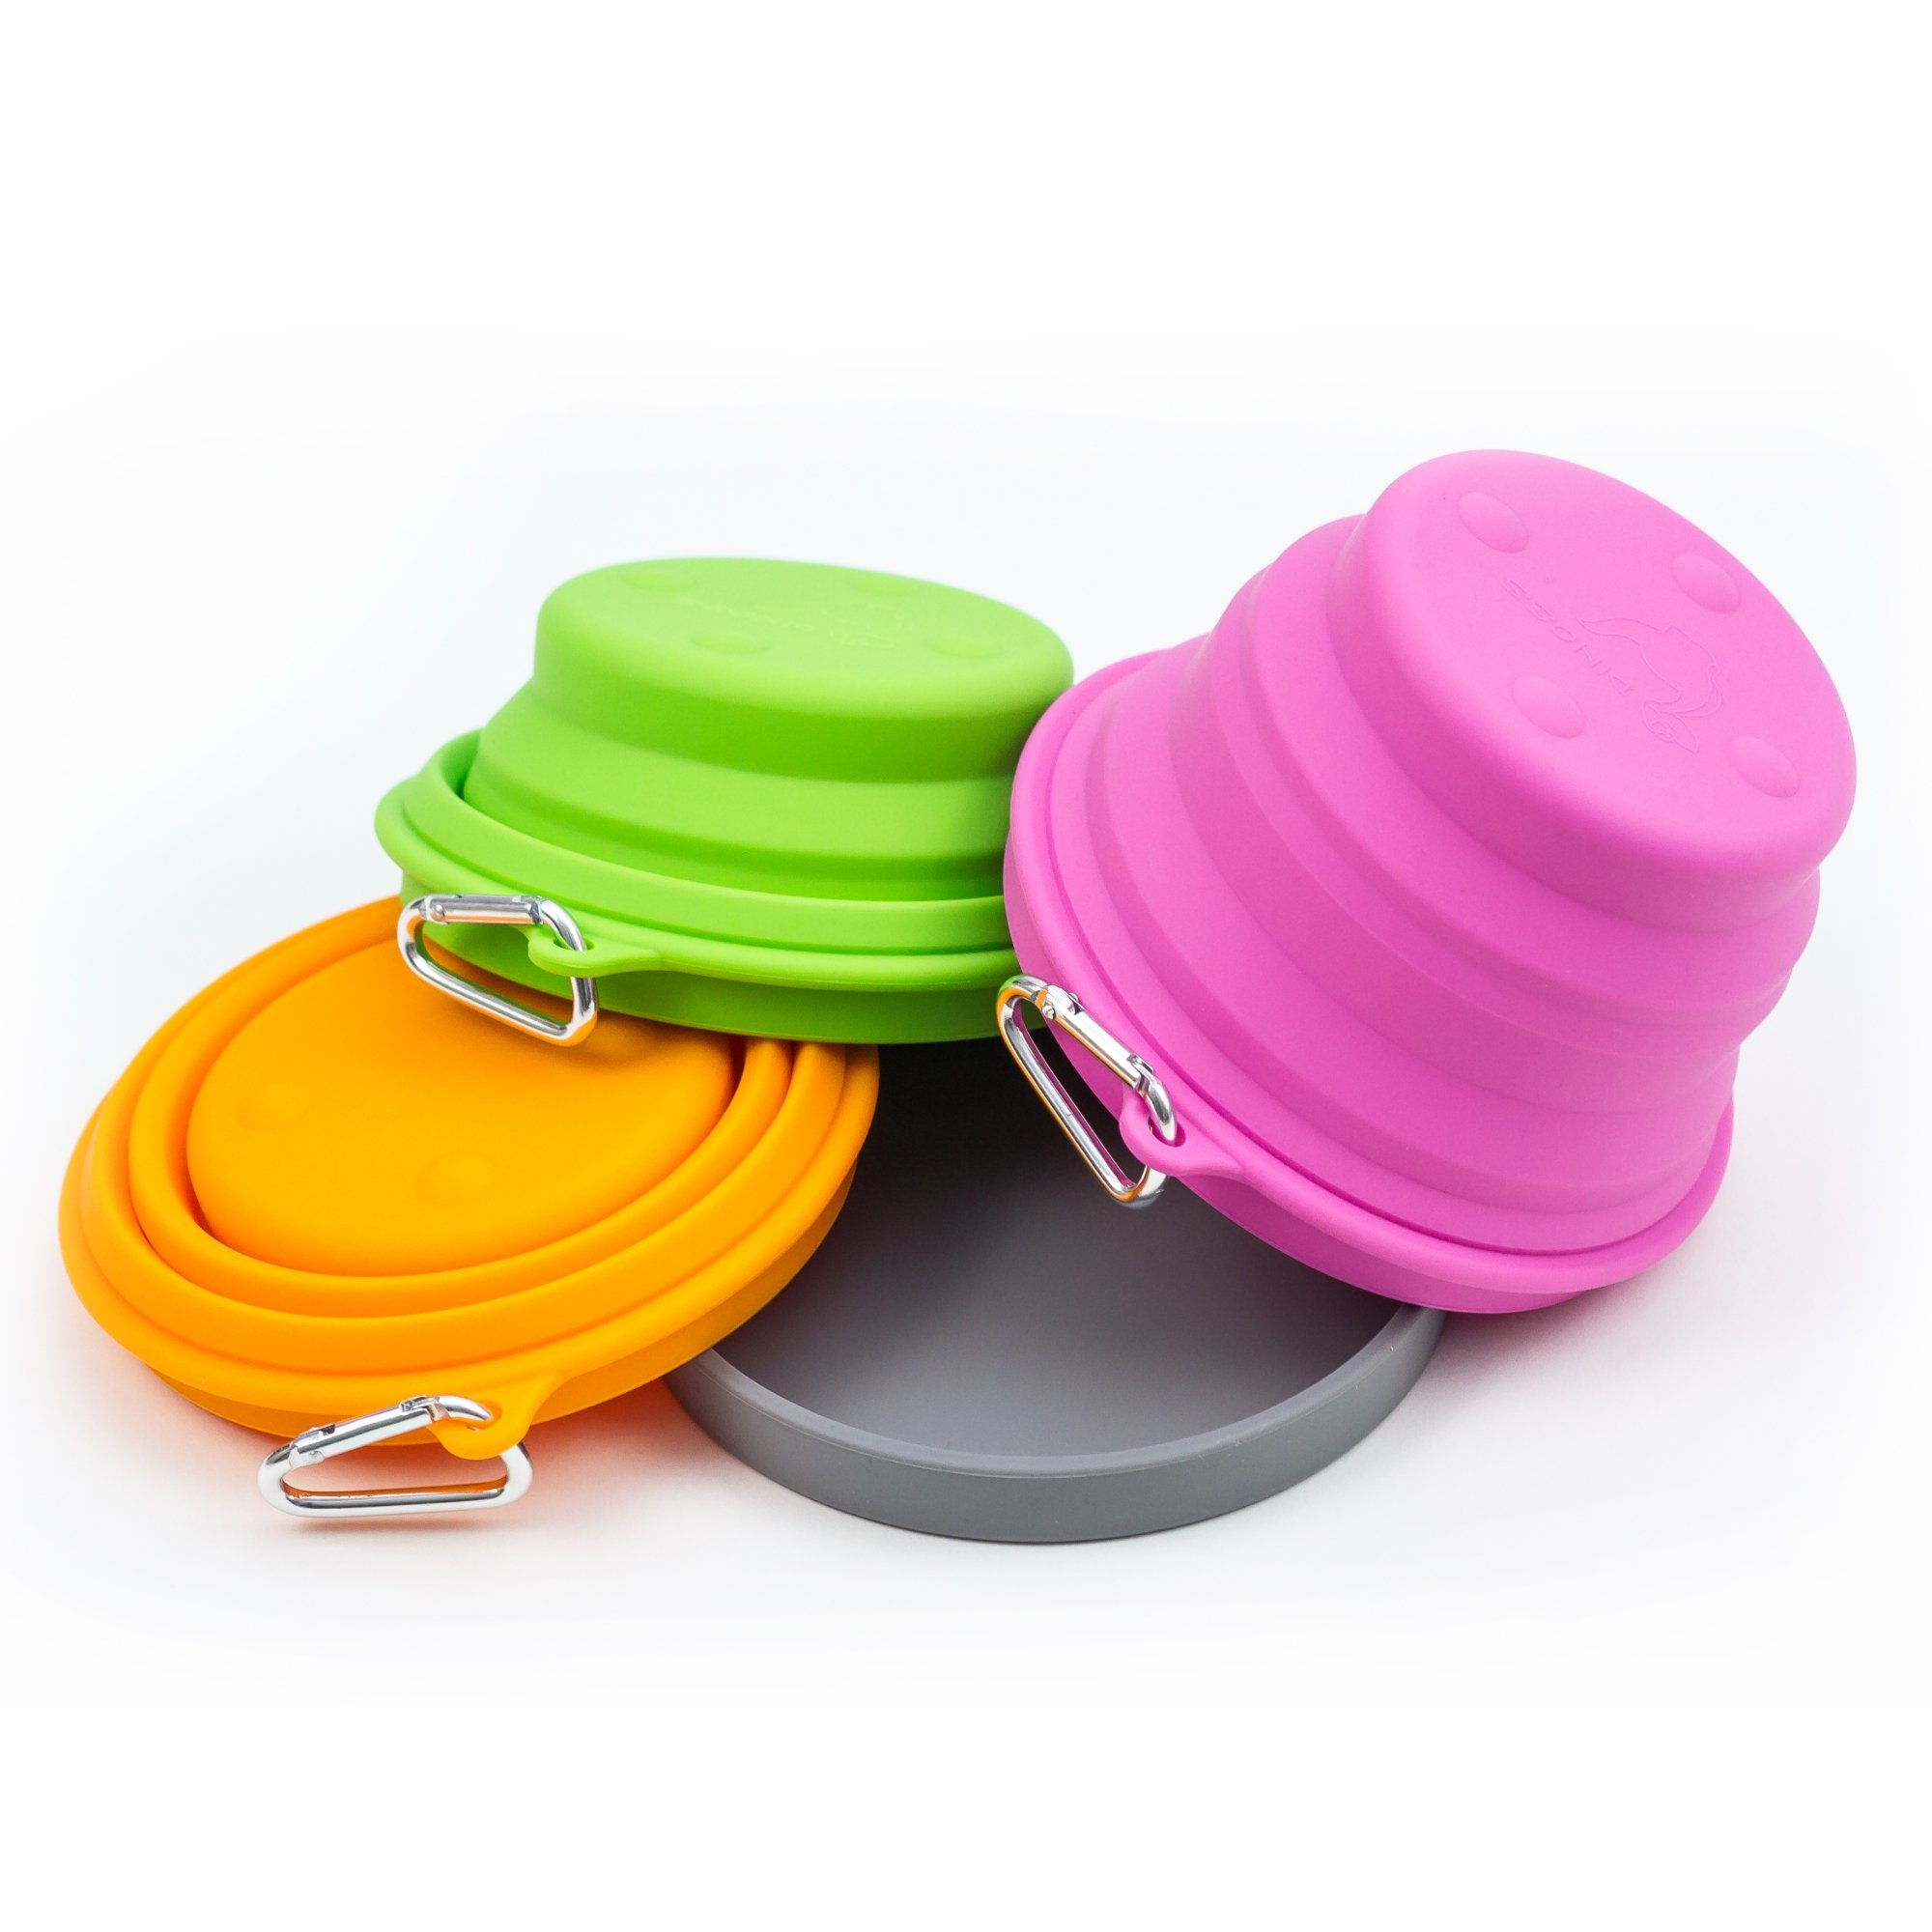 Silicone Collapsible Bowl By Dinoss. Premium Set of 3 Travel Pet/Dog/Cat Bowls, Lid and Carbin. Size: 2 Cups. Ideal for Sport & Outdoor As Food or Water Container. Your Furry Friends Deserve the Best!